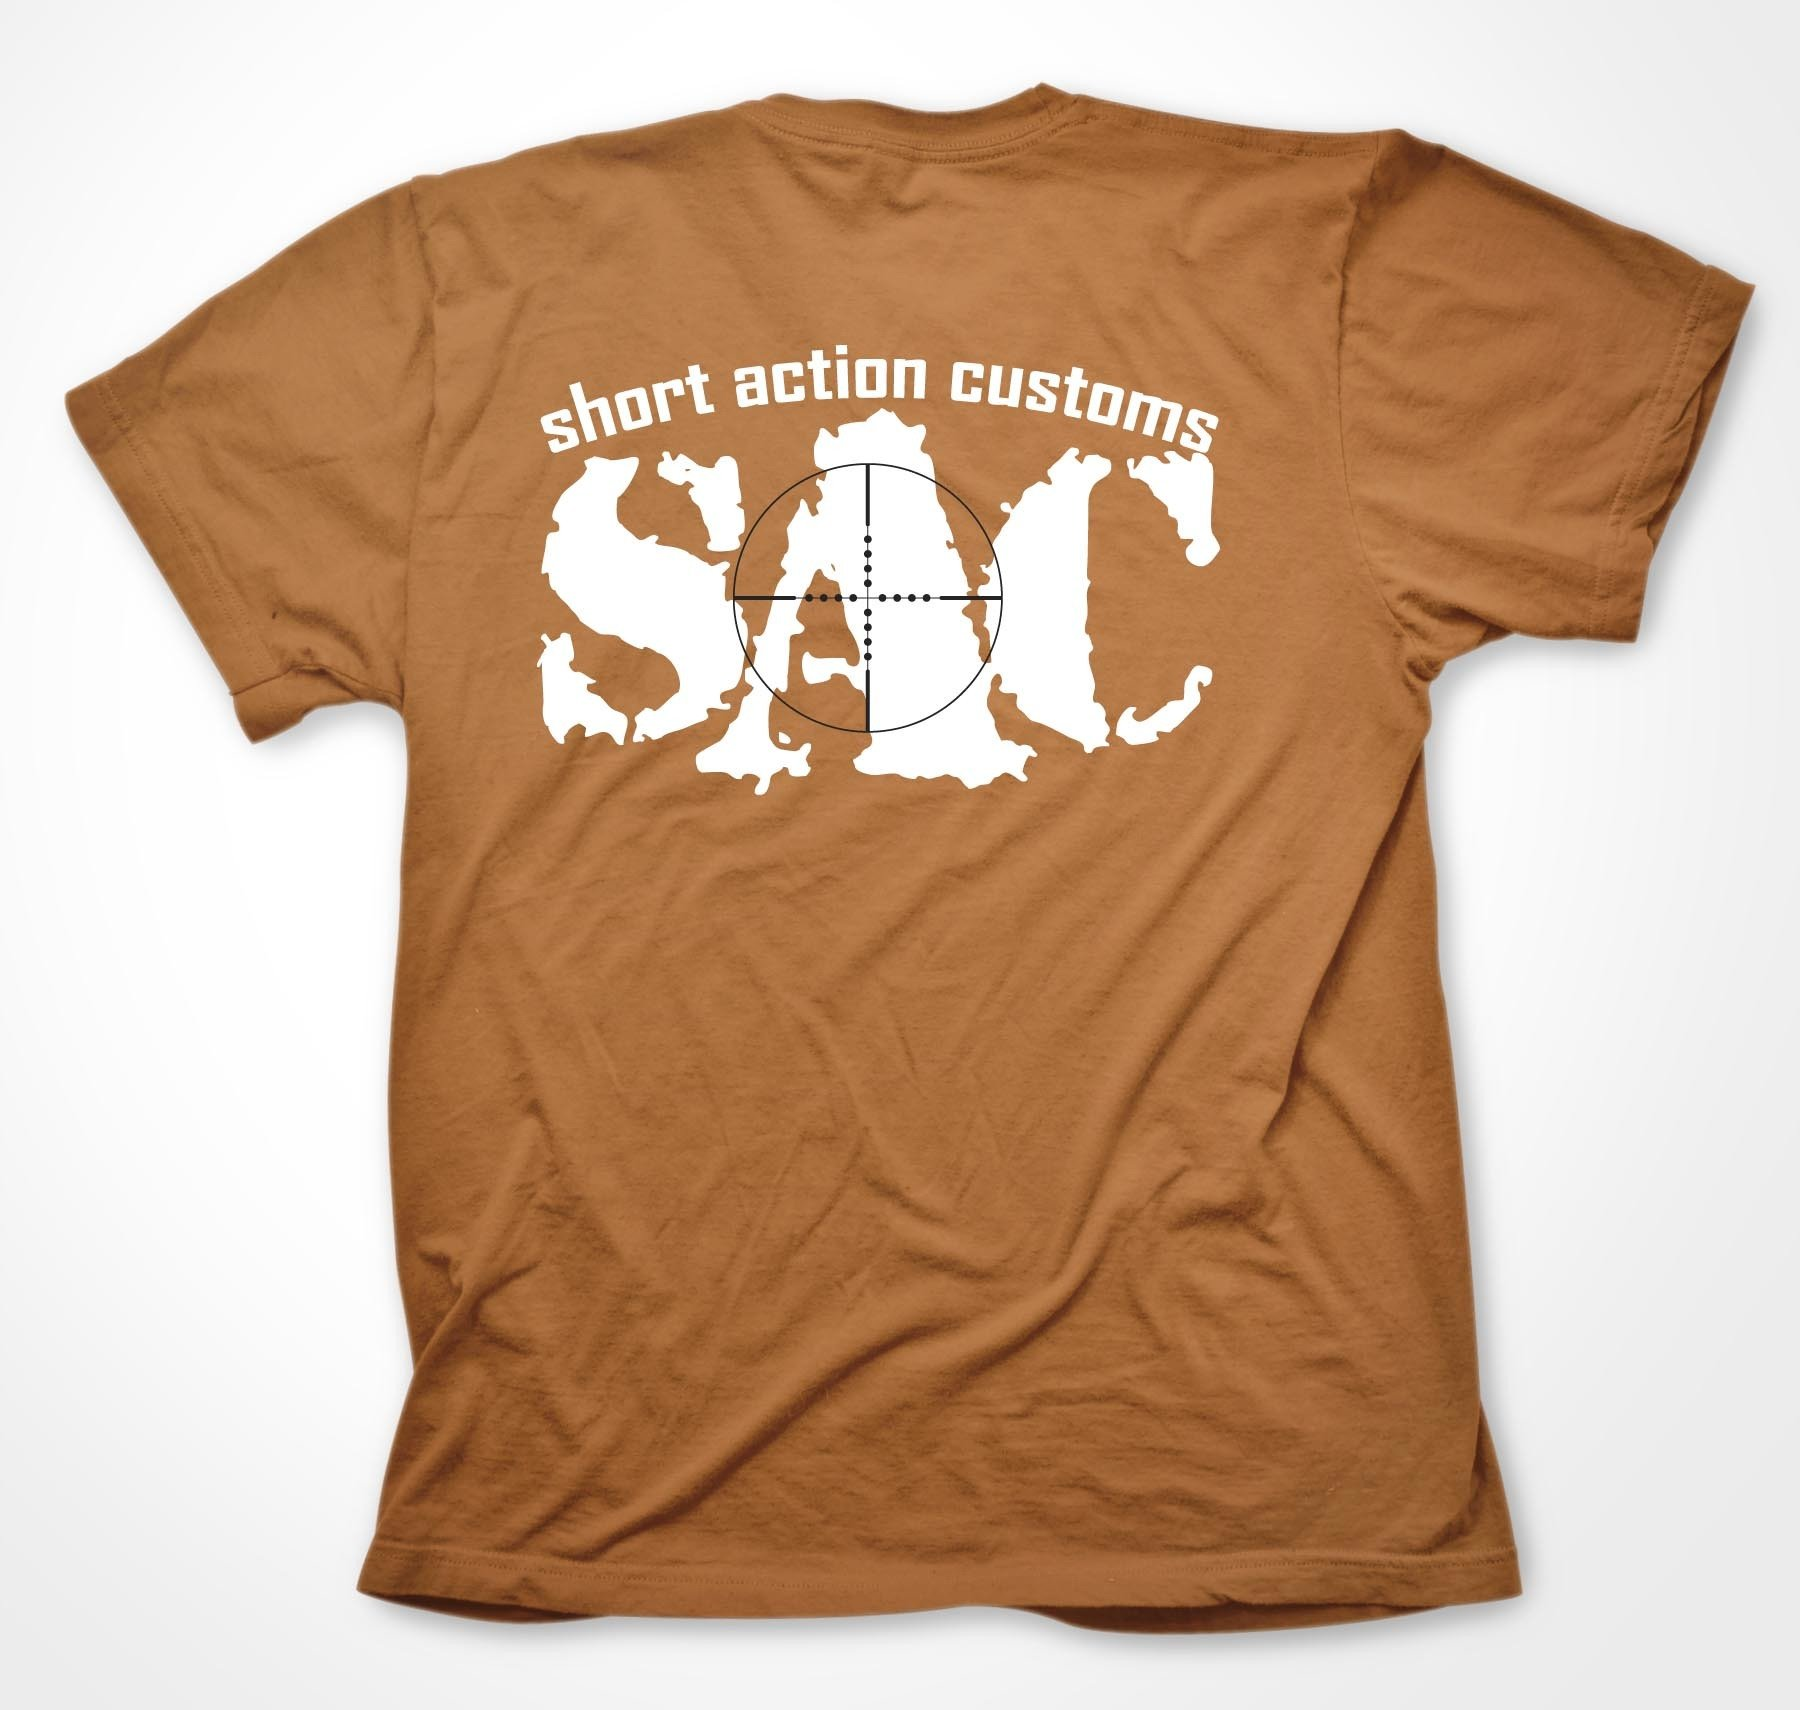 SAC Original Men's T-Shirt in Camel